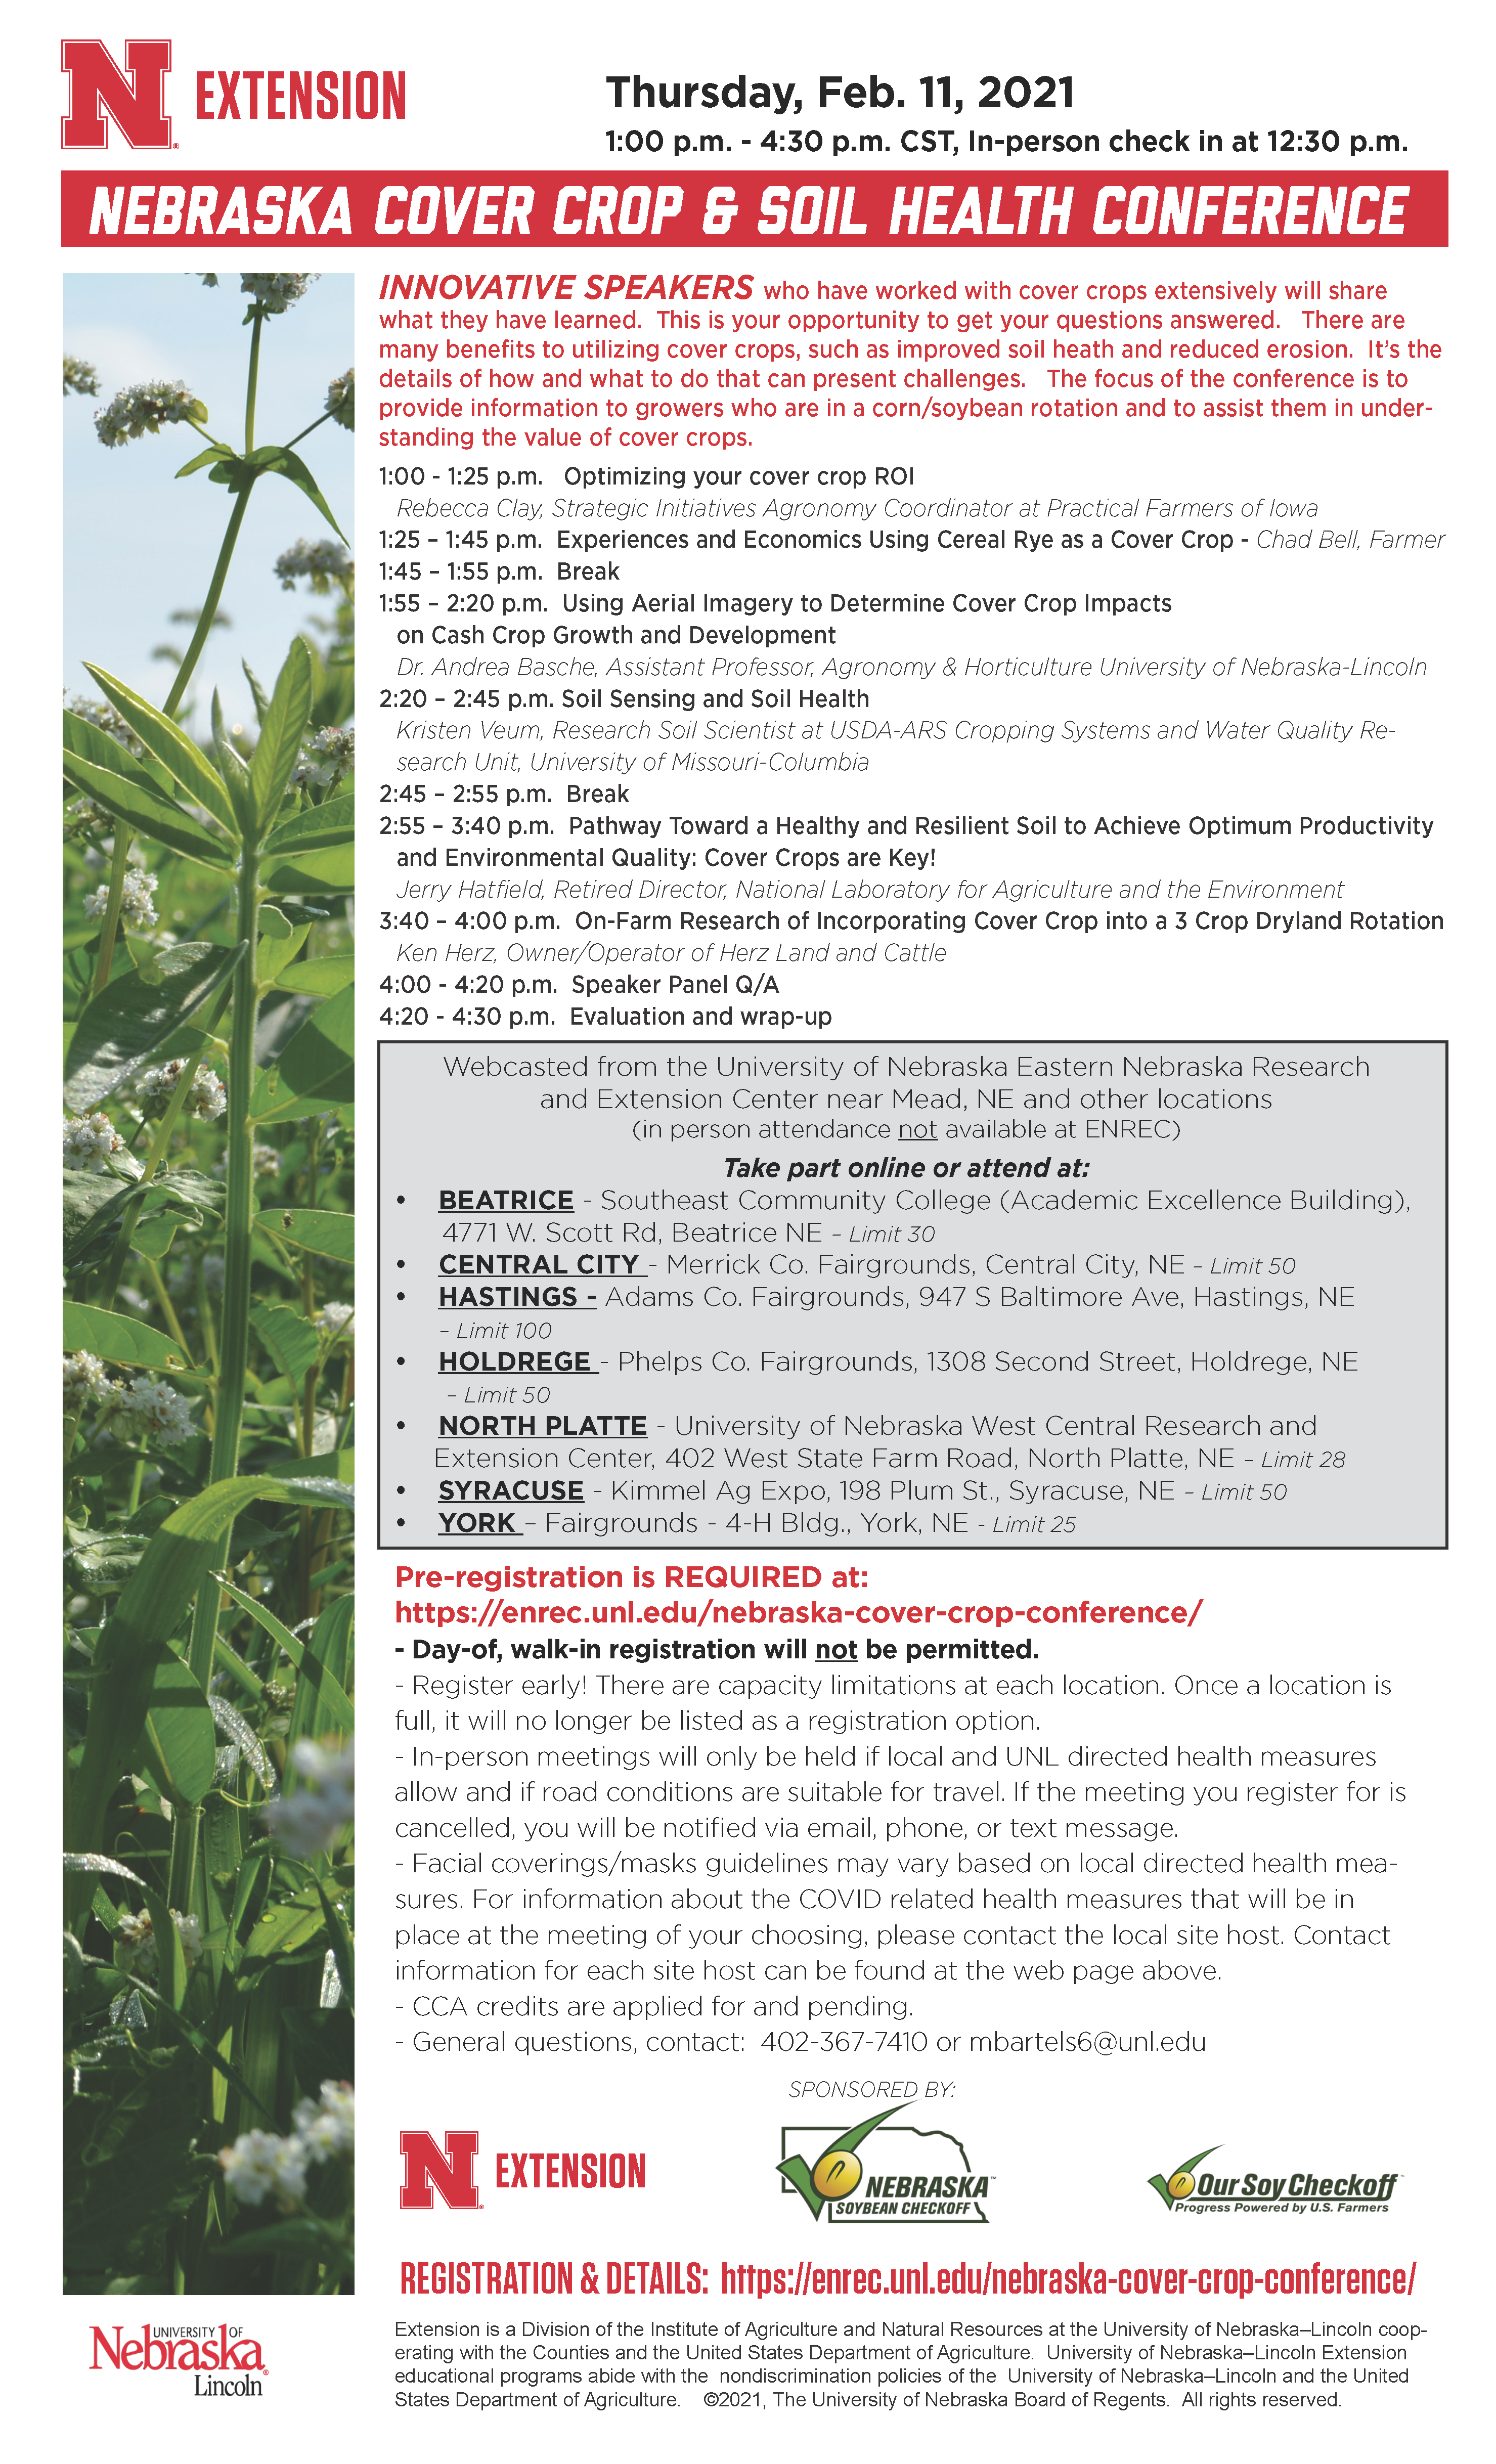 flyer for 2021 Nebraska cover crop and soil health conference